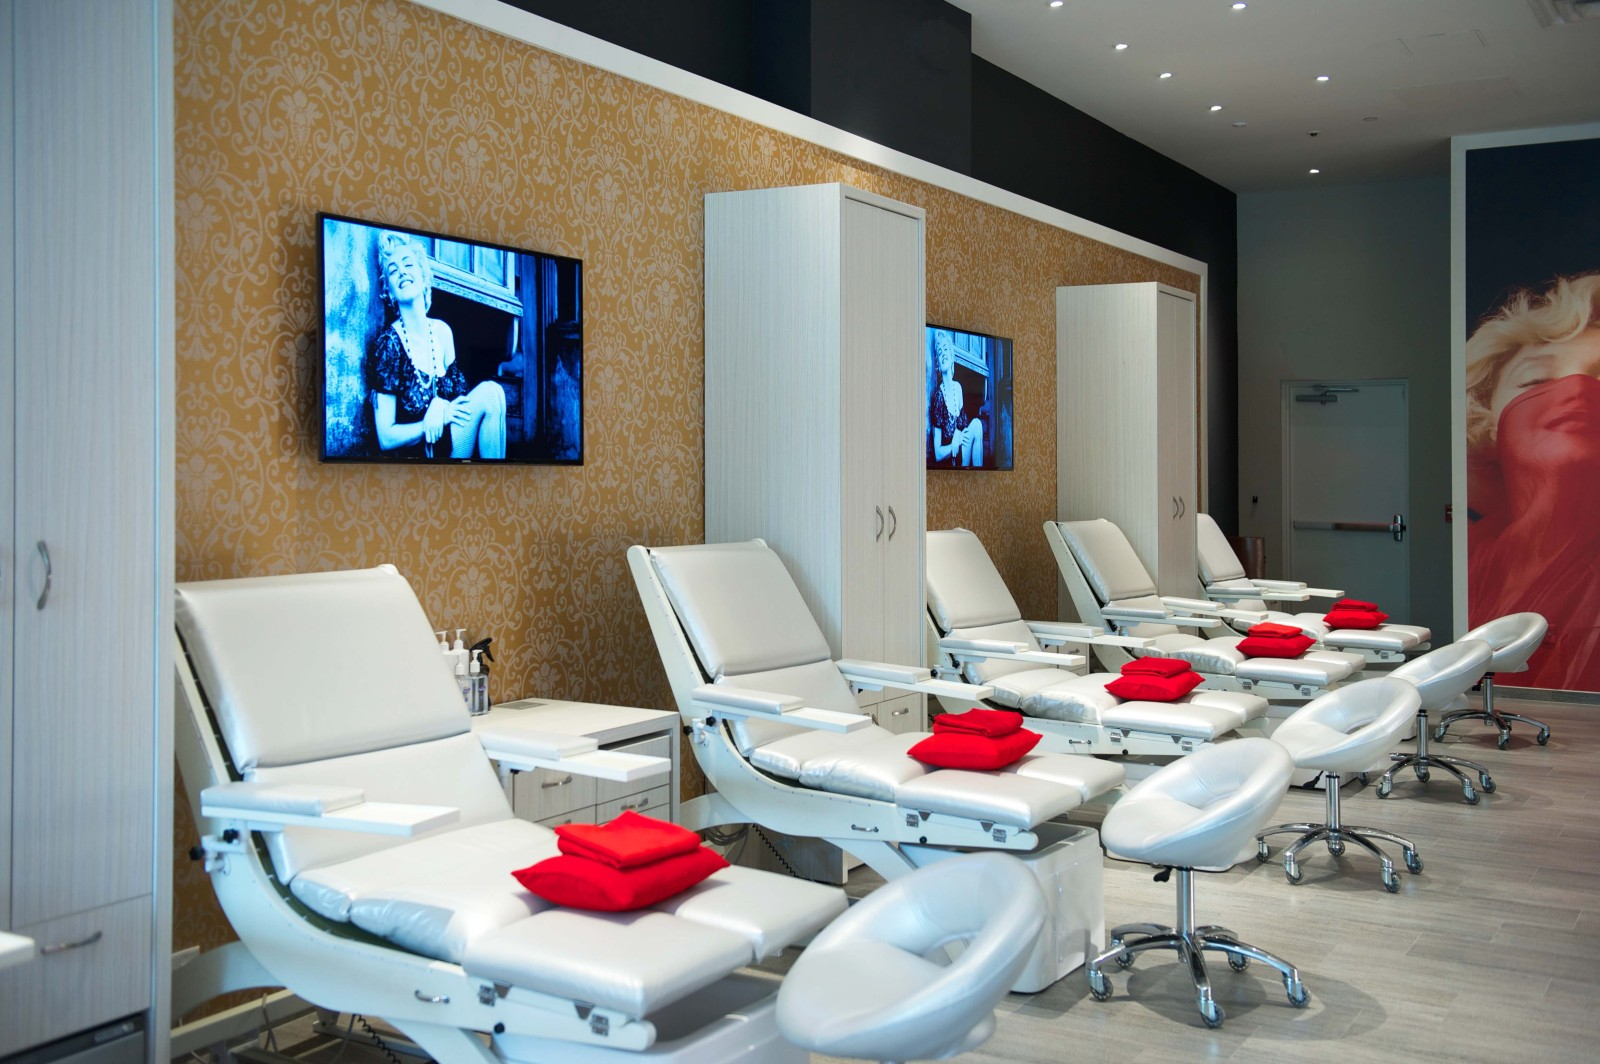 Marilyn Monroe Spa Coming to Hyatt Regency Grand Cypress December 2014